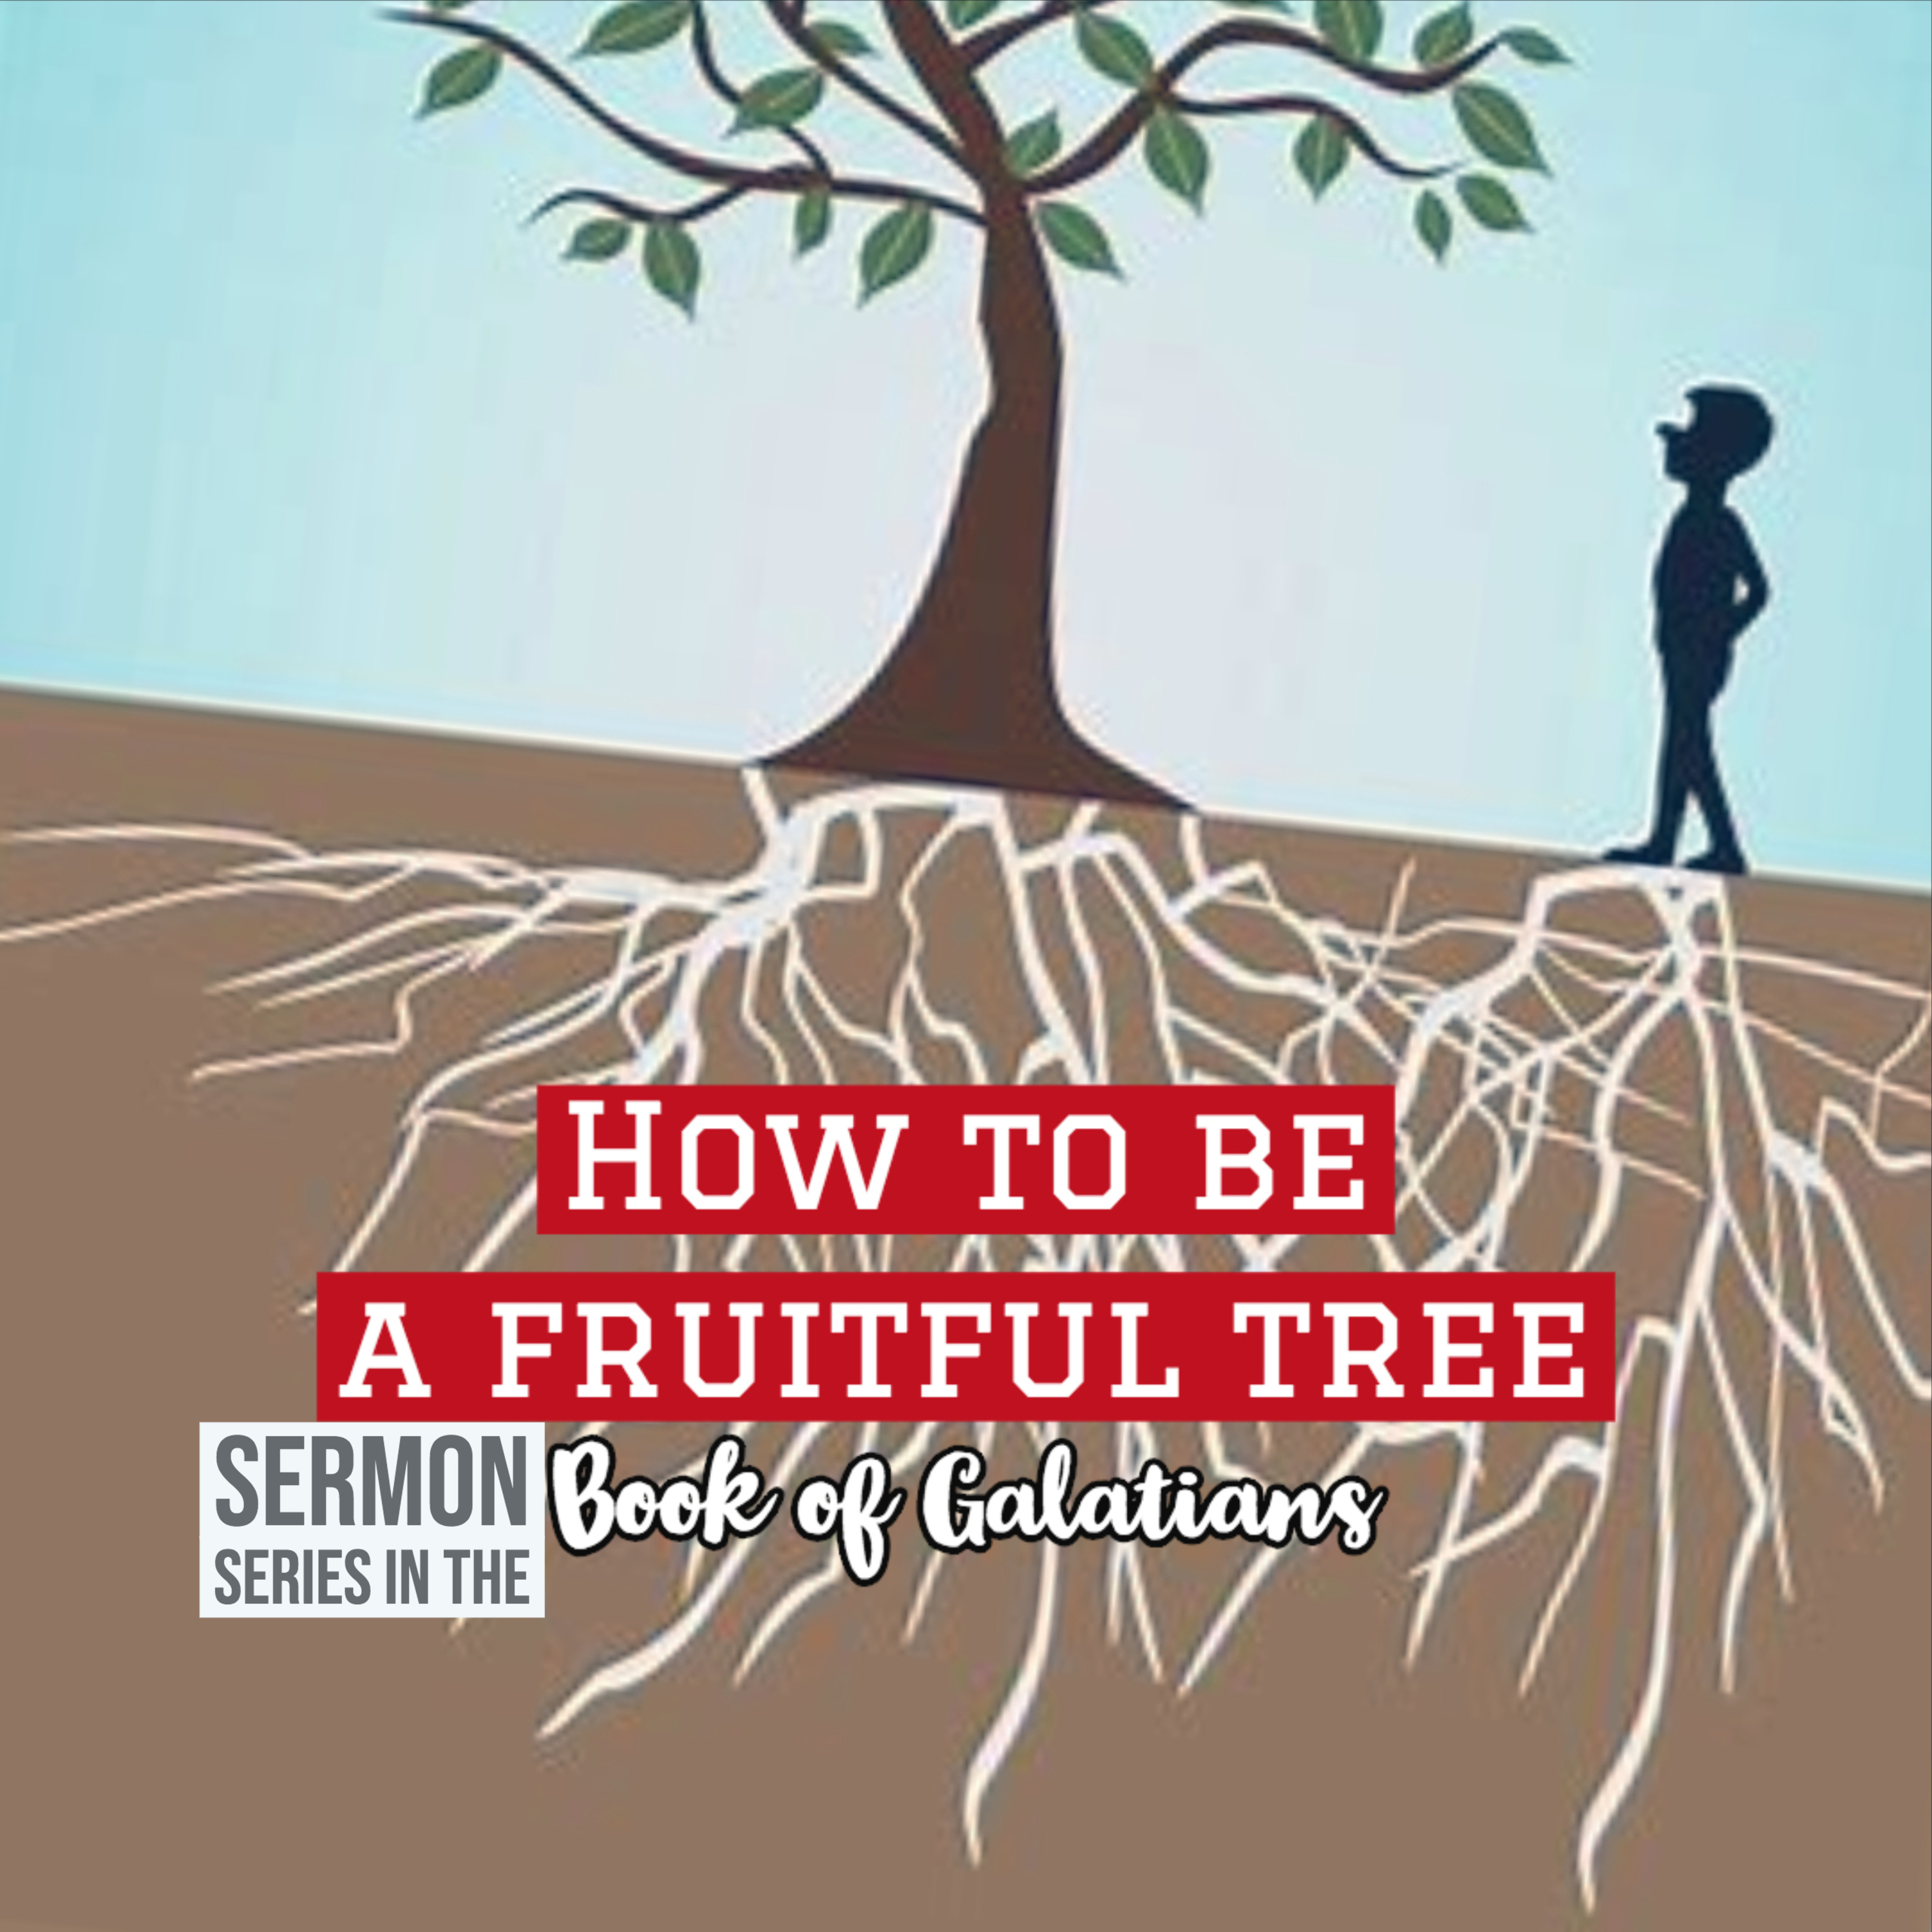 The prevent of world impact (Series of book of Galatians)